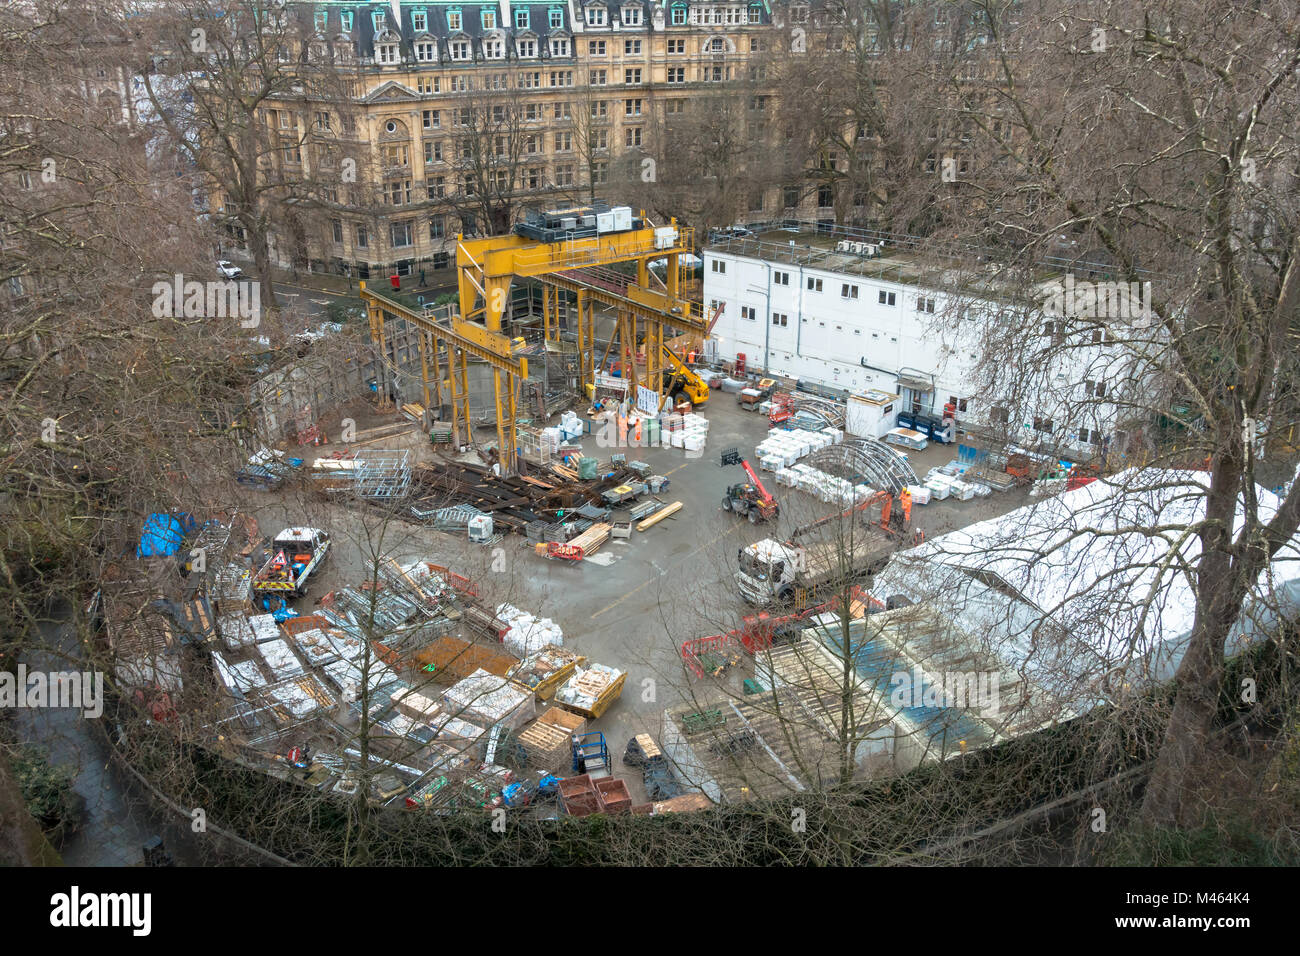 An access shaft is dug into the ground in Finsbury Circus Gardens in  London as part of building the new Crossrail - Stock Image